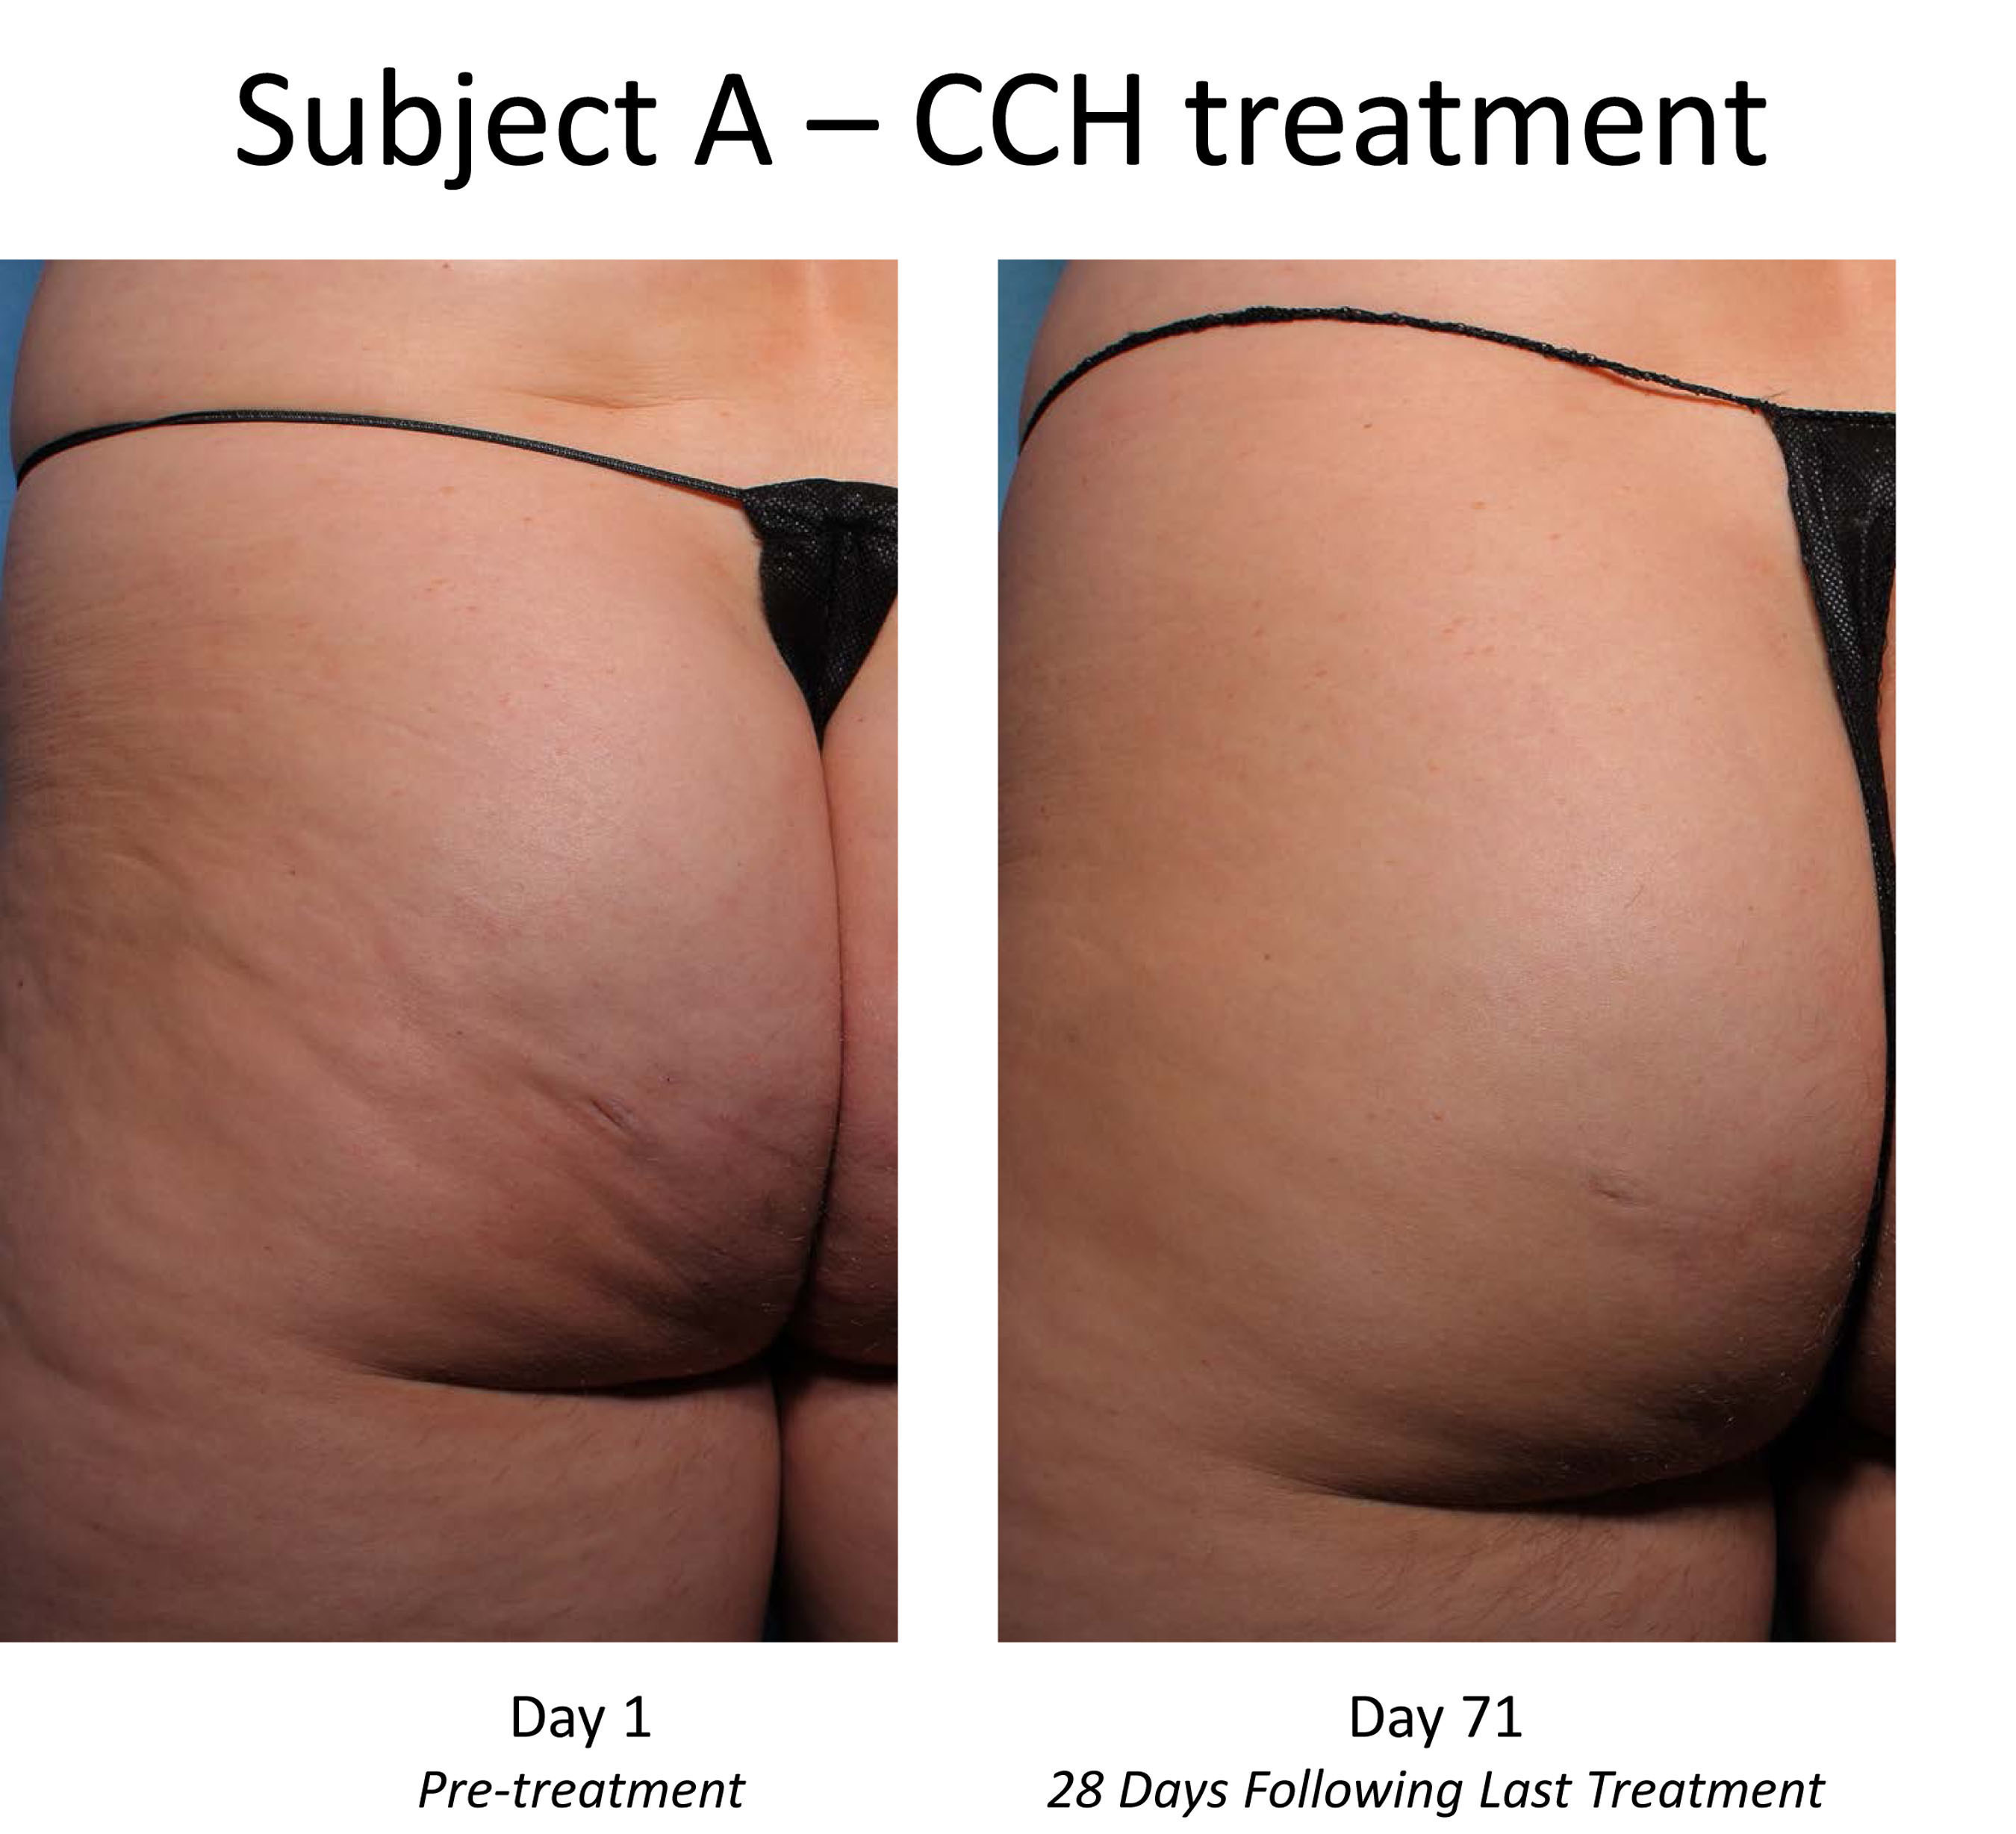 Pre- and post-treatment photos of CCH-treated subject